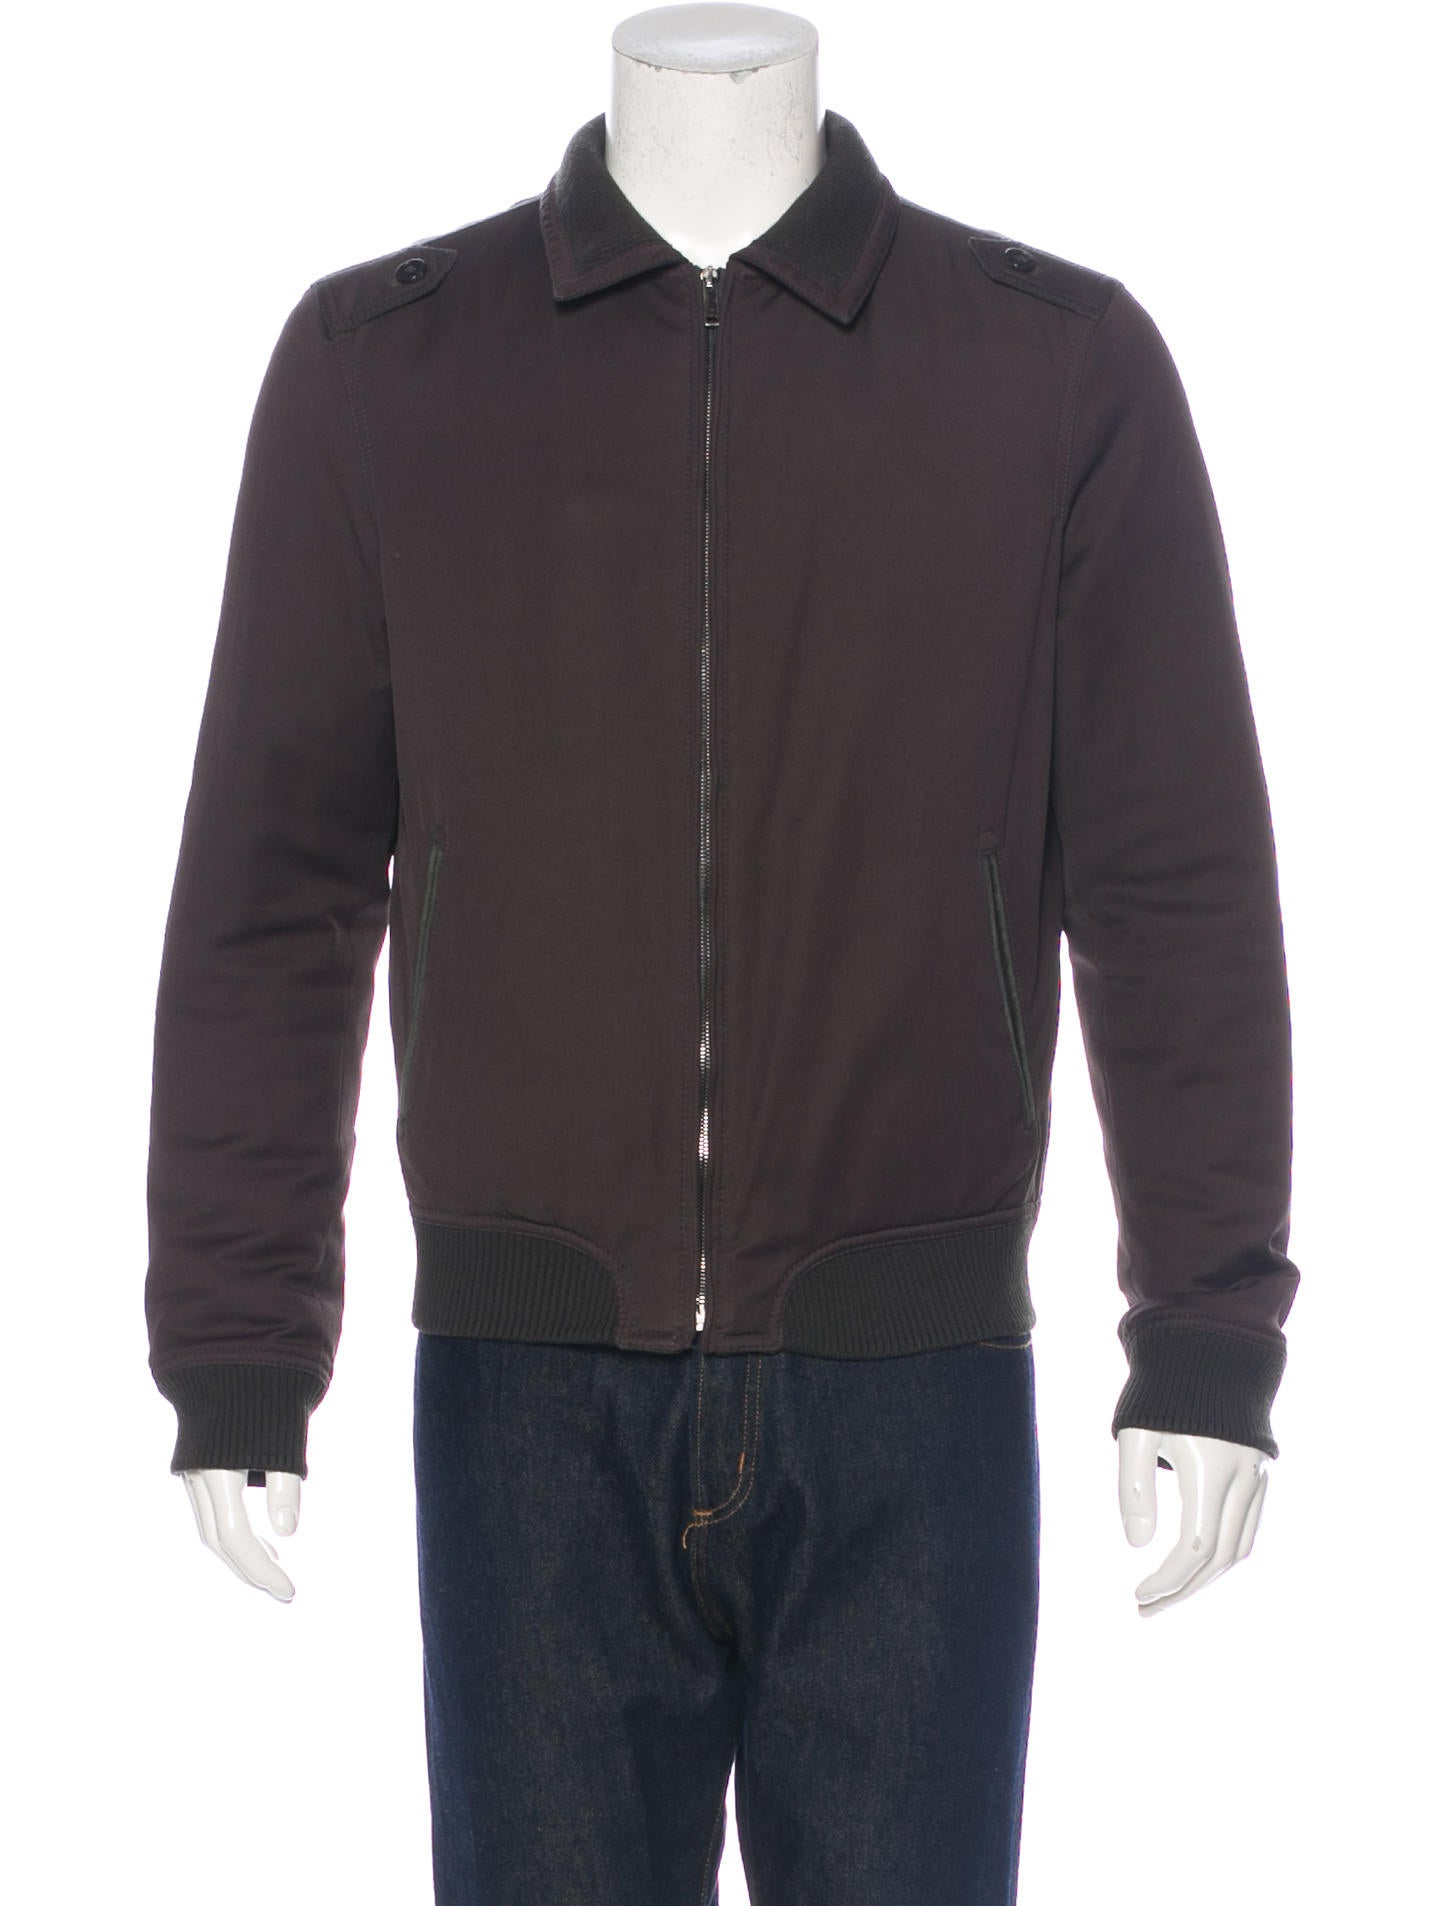 c33fcf7d Z Zegna Twill Bomber Jacket - Mens Outerwear - ZZG20353 | The RealReal